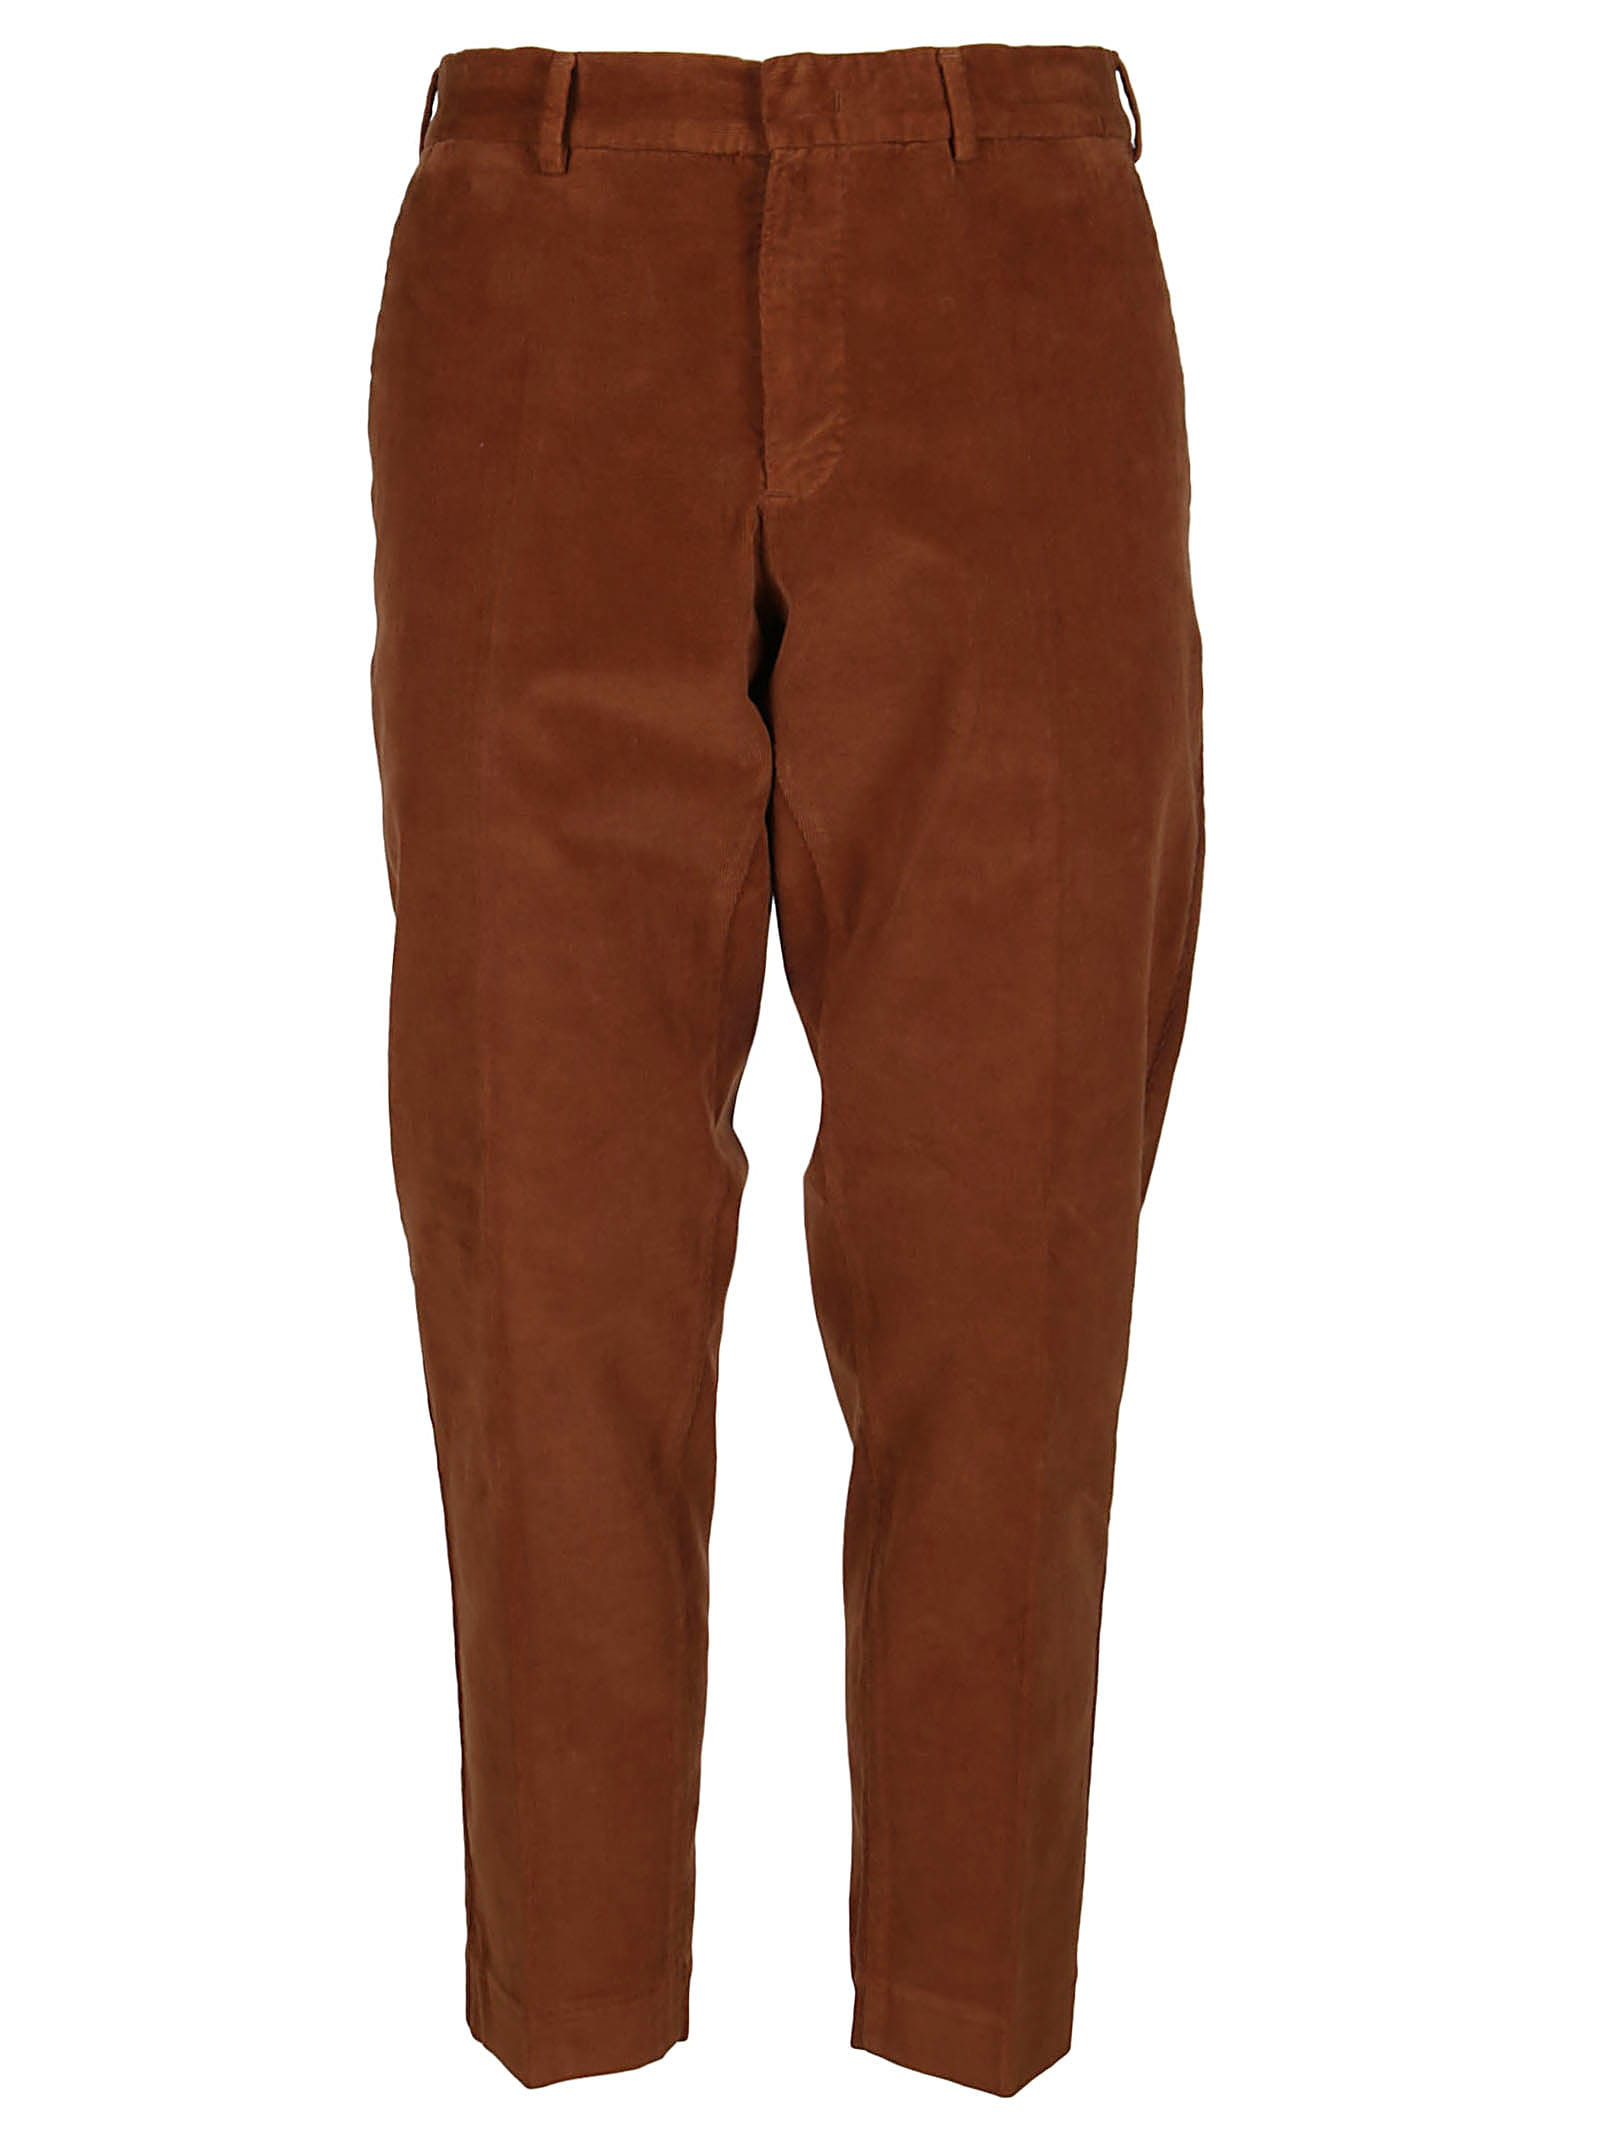 PT01 Brown Cotton Trousers